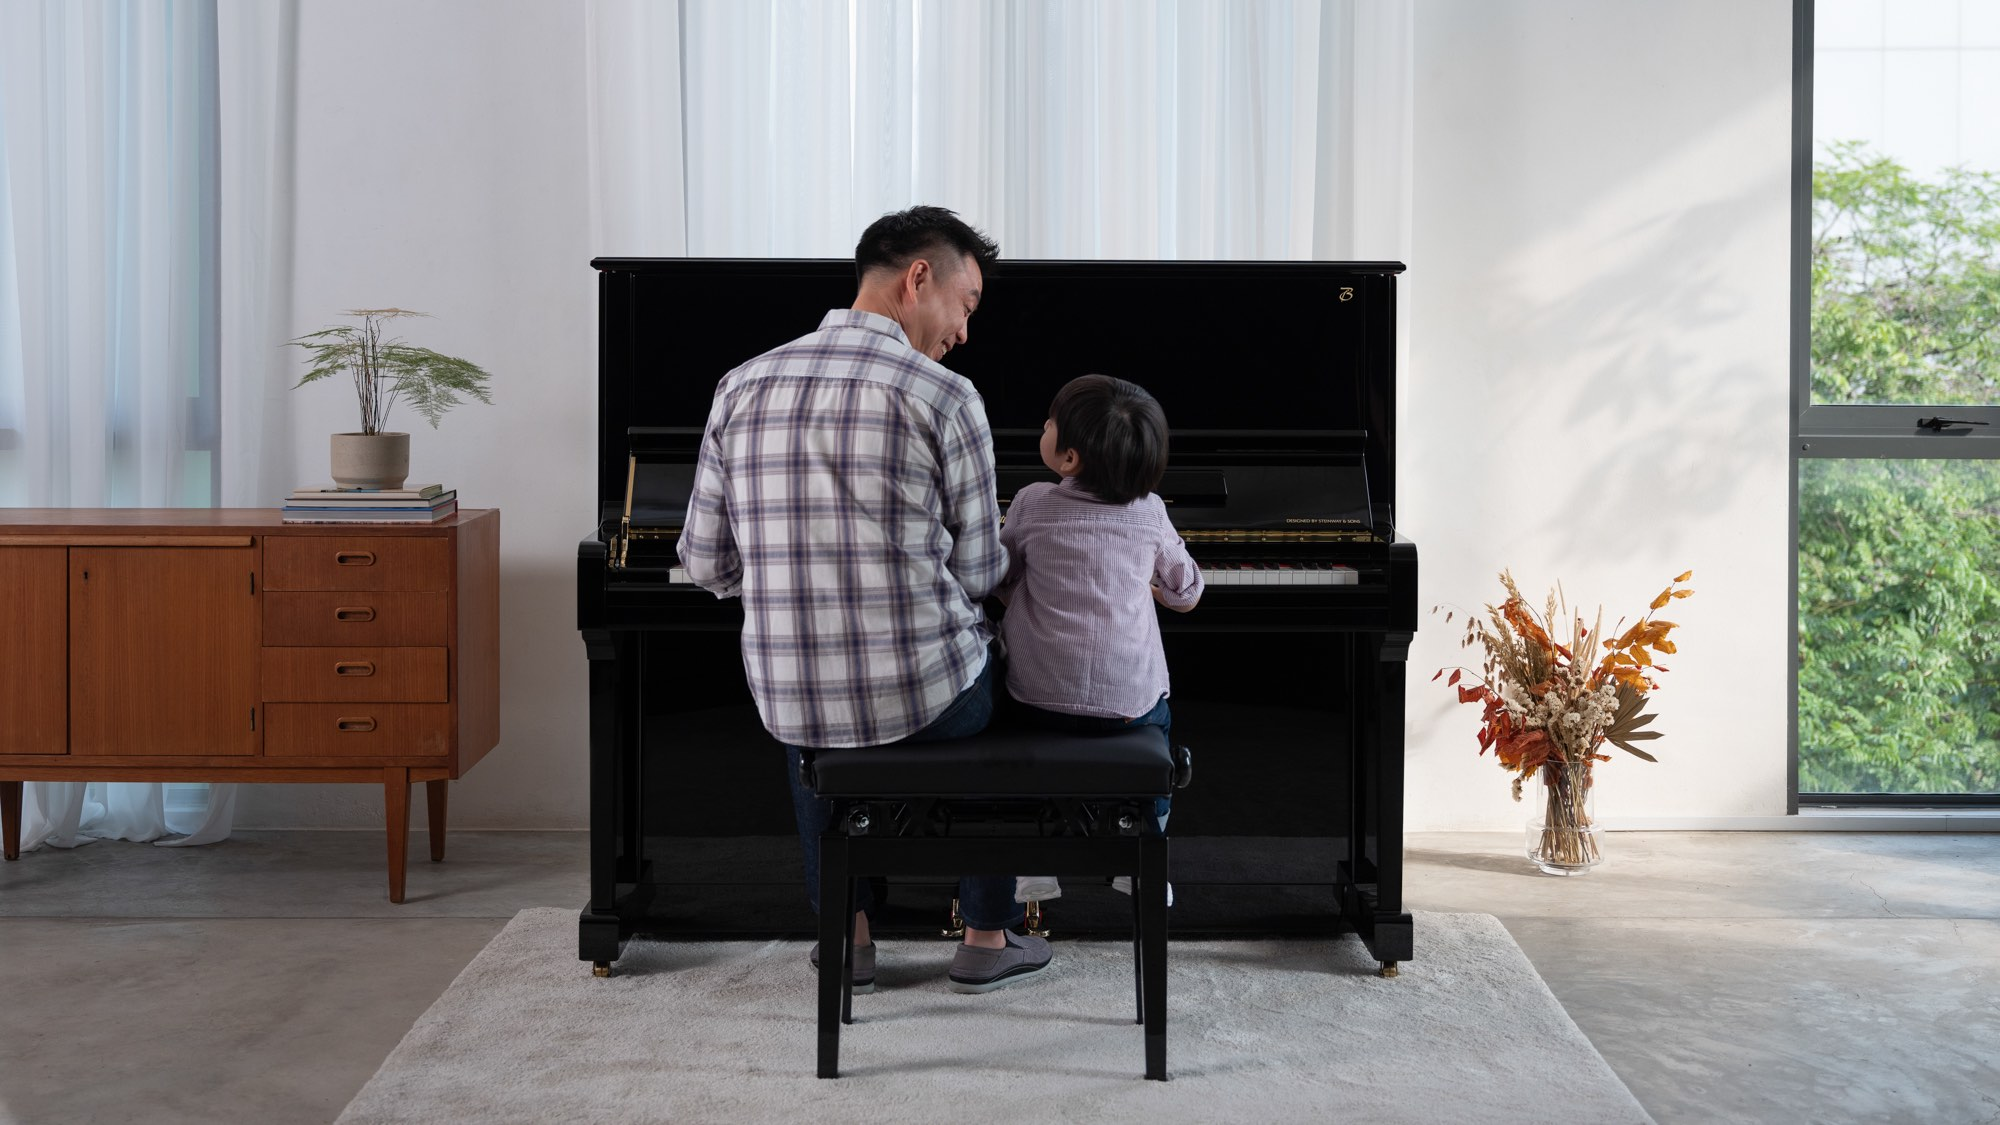 Piano Commercial Photography Product Photographer Singapore COCO Creative Studio-20